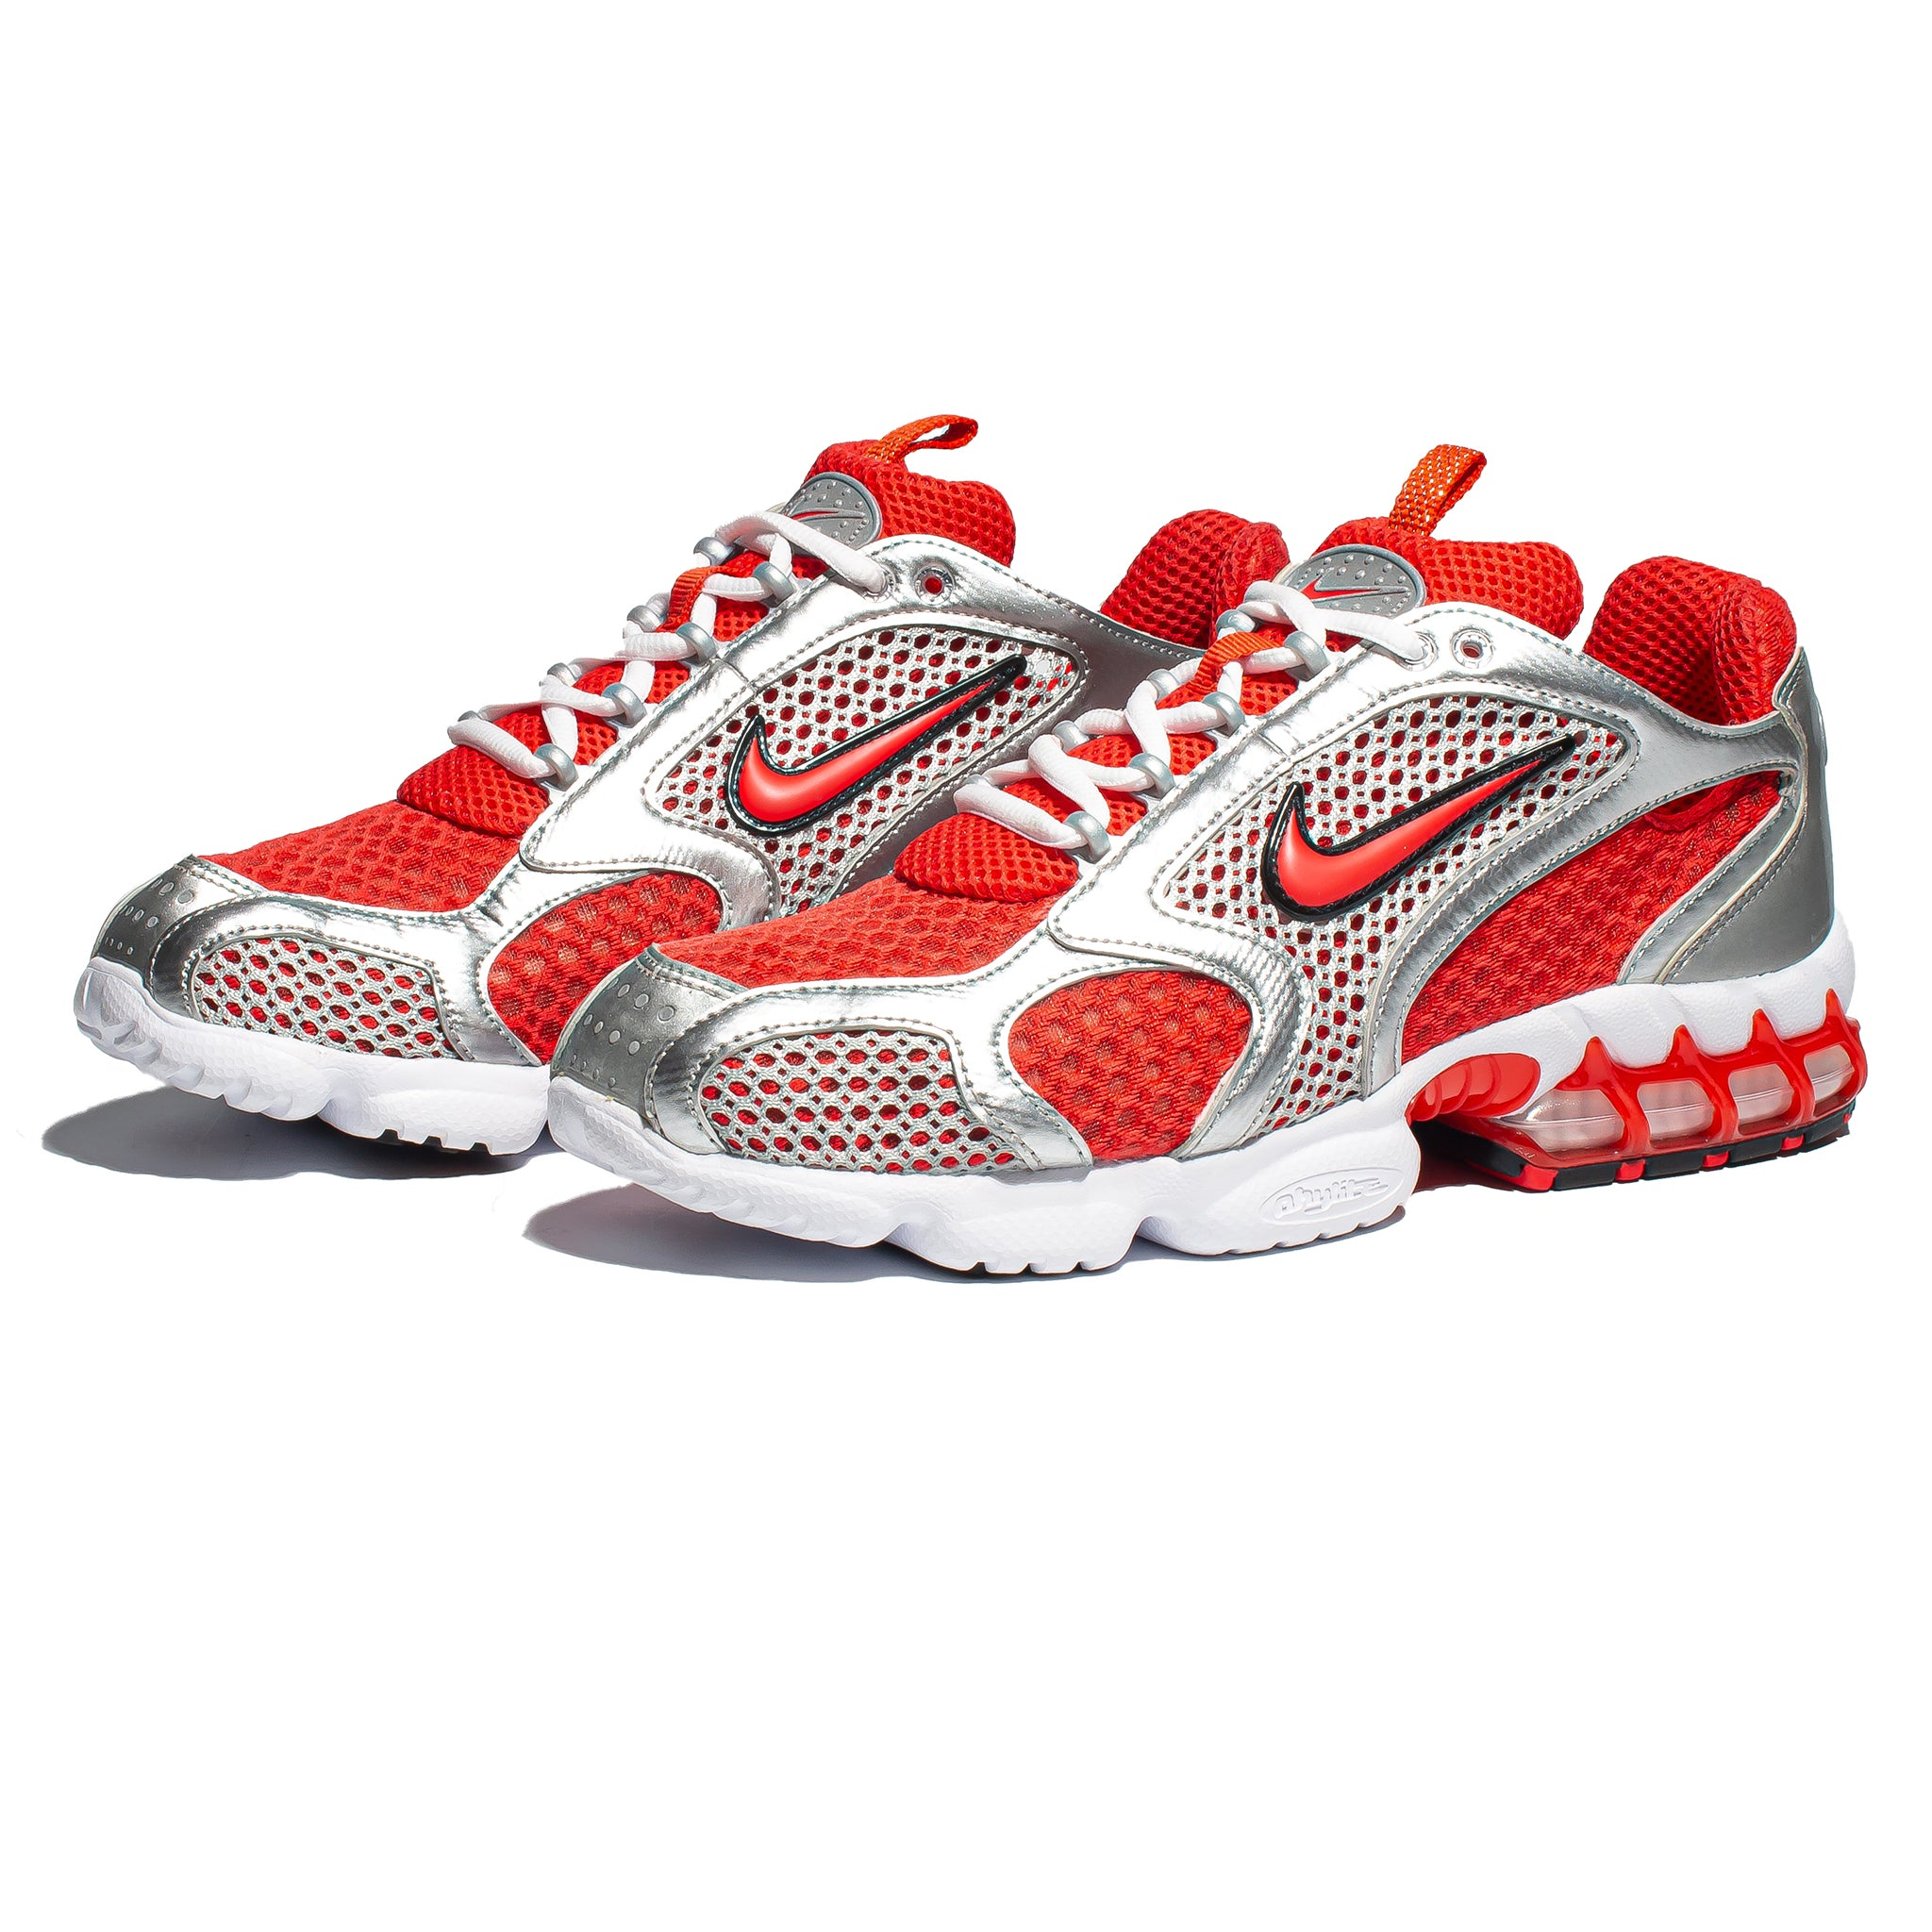 Nike Air Zoom Spiridon Cage 2 'Varsity Red'